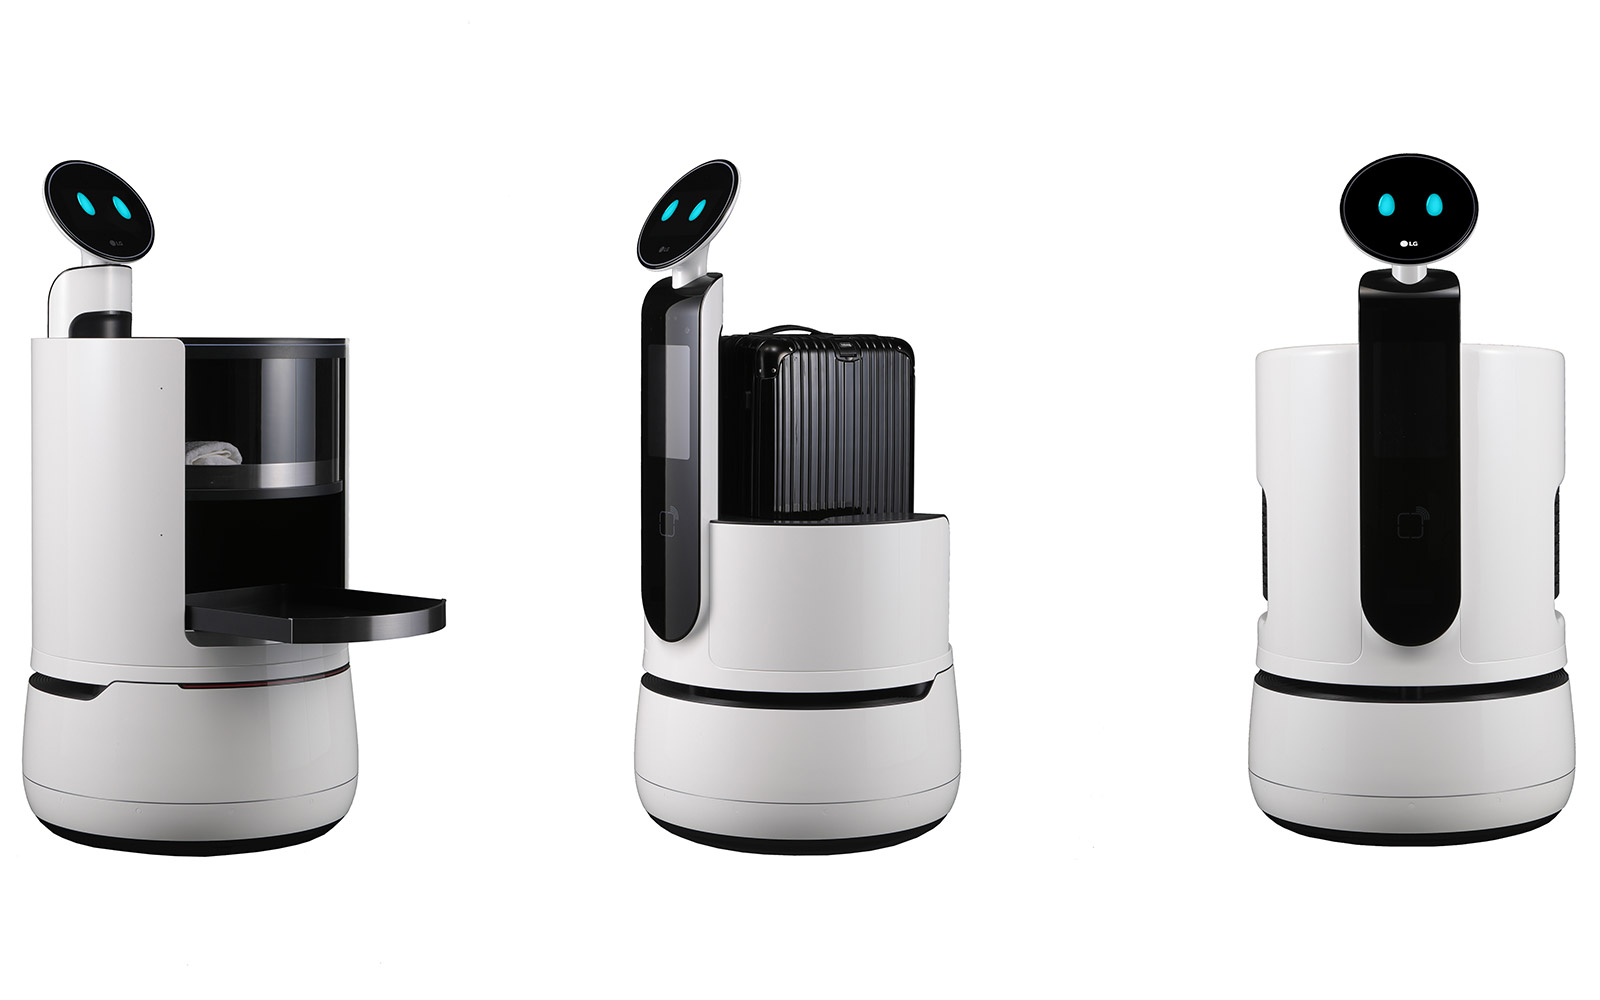 Lg 39 s new cloi robots are designed for hotels and supermarkets for Product design singapore